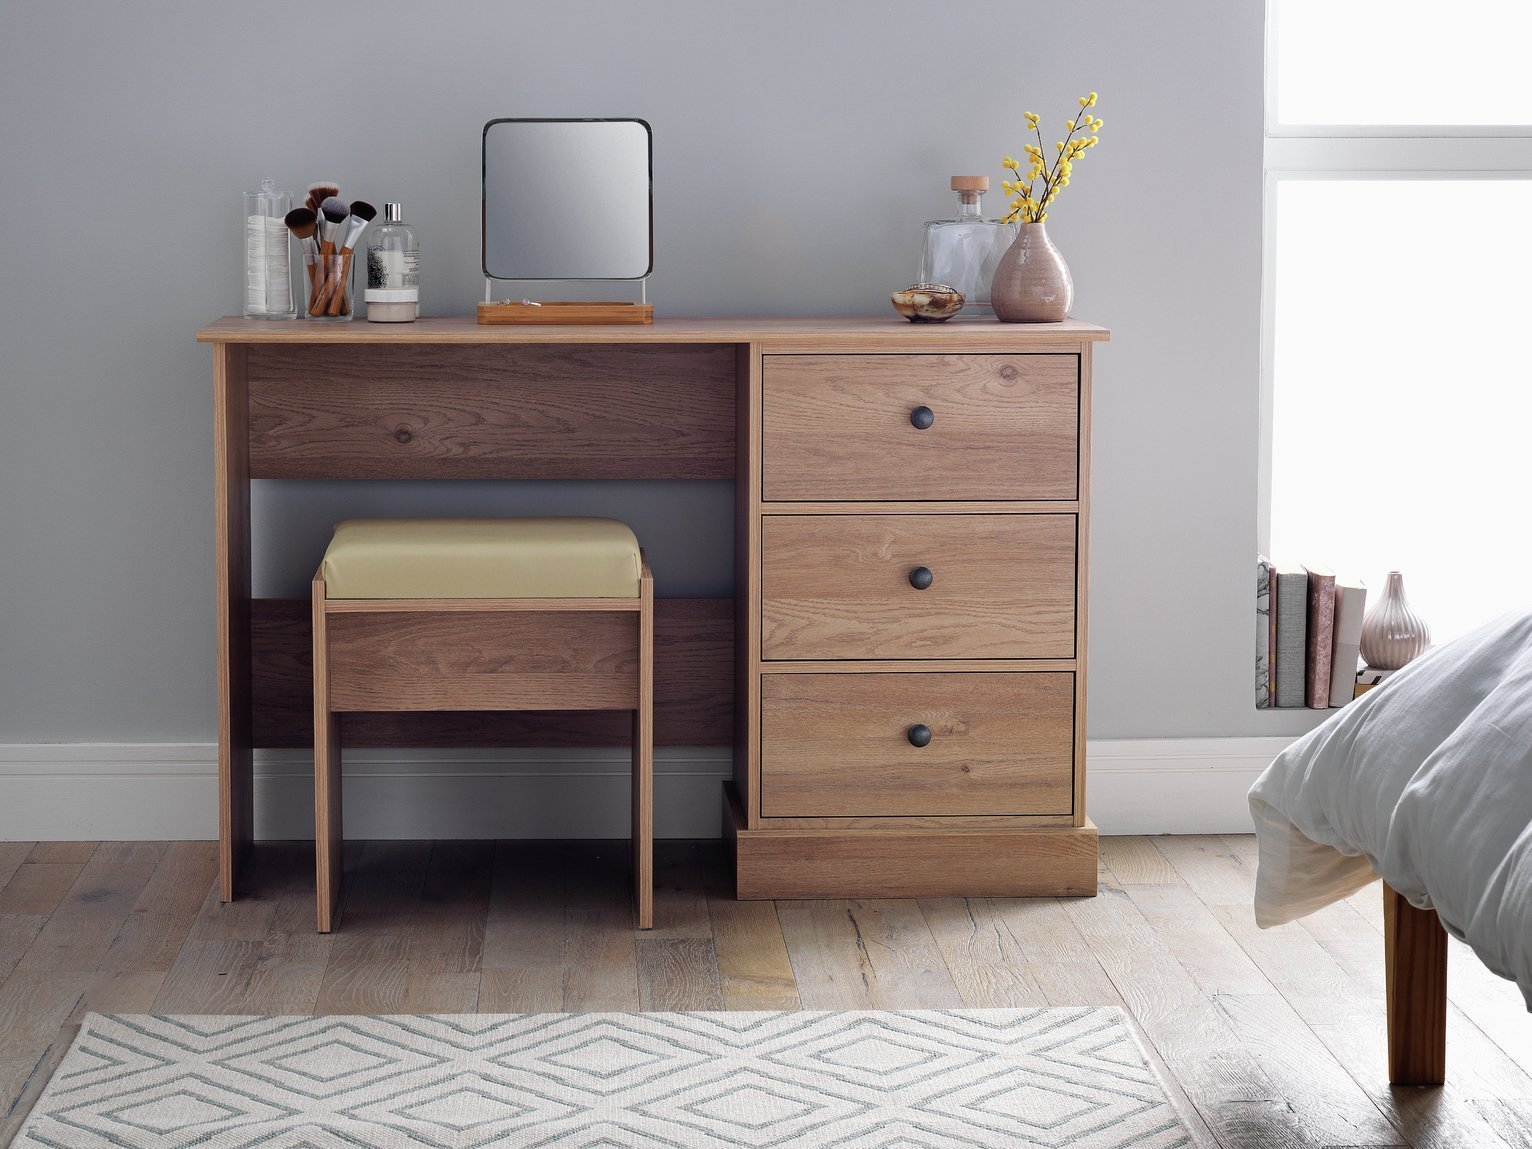 Best Argos Bedroom Furniture Dressing Table Psoriasisguru Com With Pictures